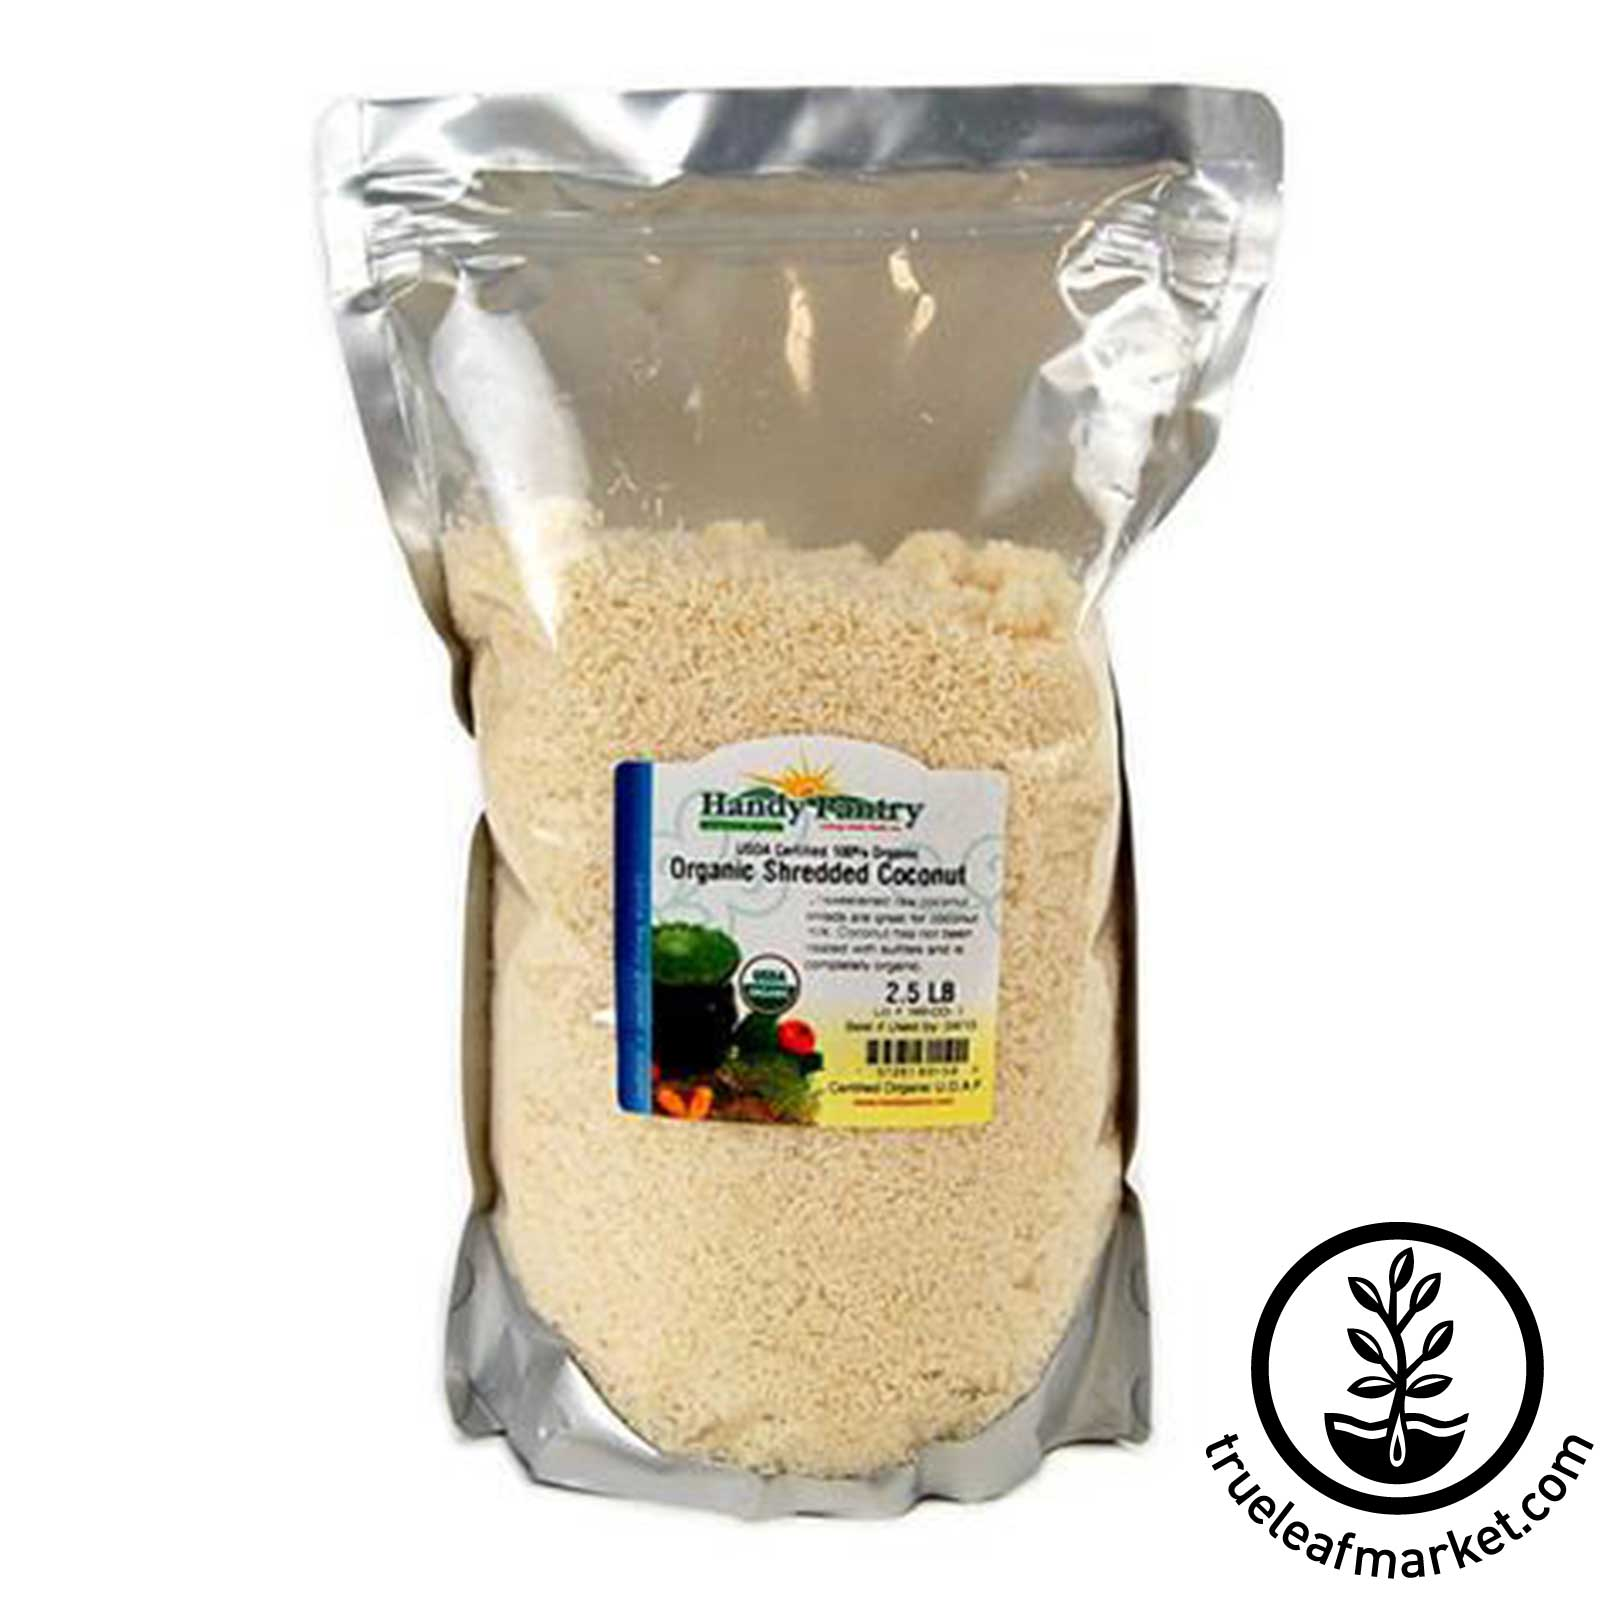 Organic Shredded Coconut - 2.5 Lbs organic coconut, shredded coconut, coconut